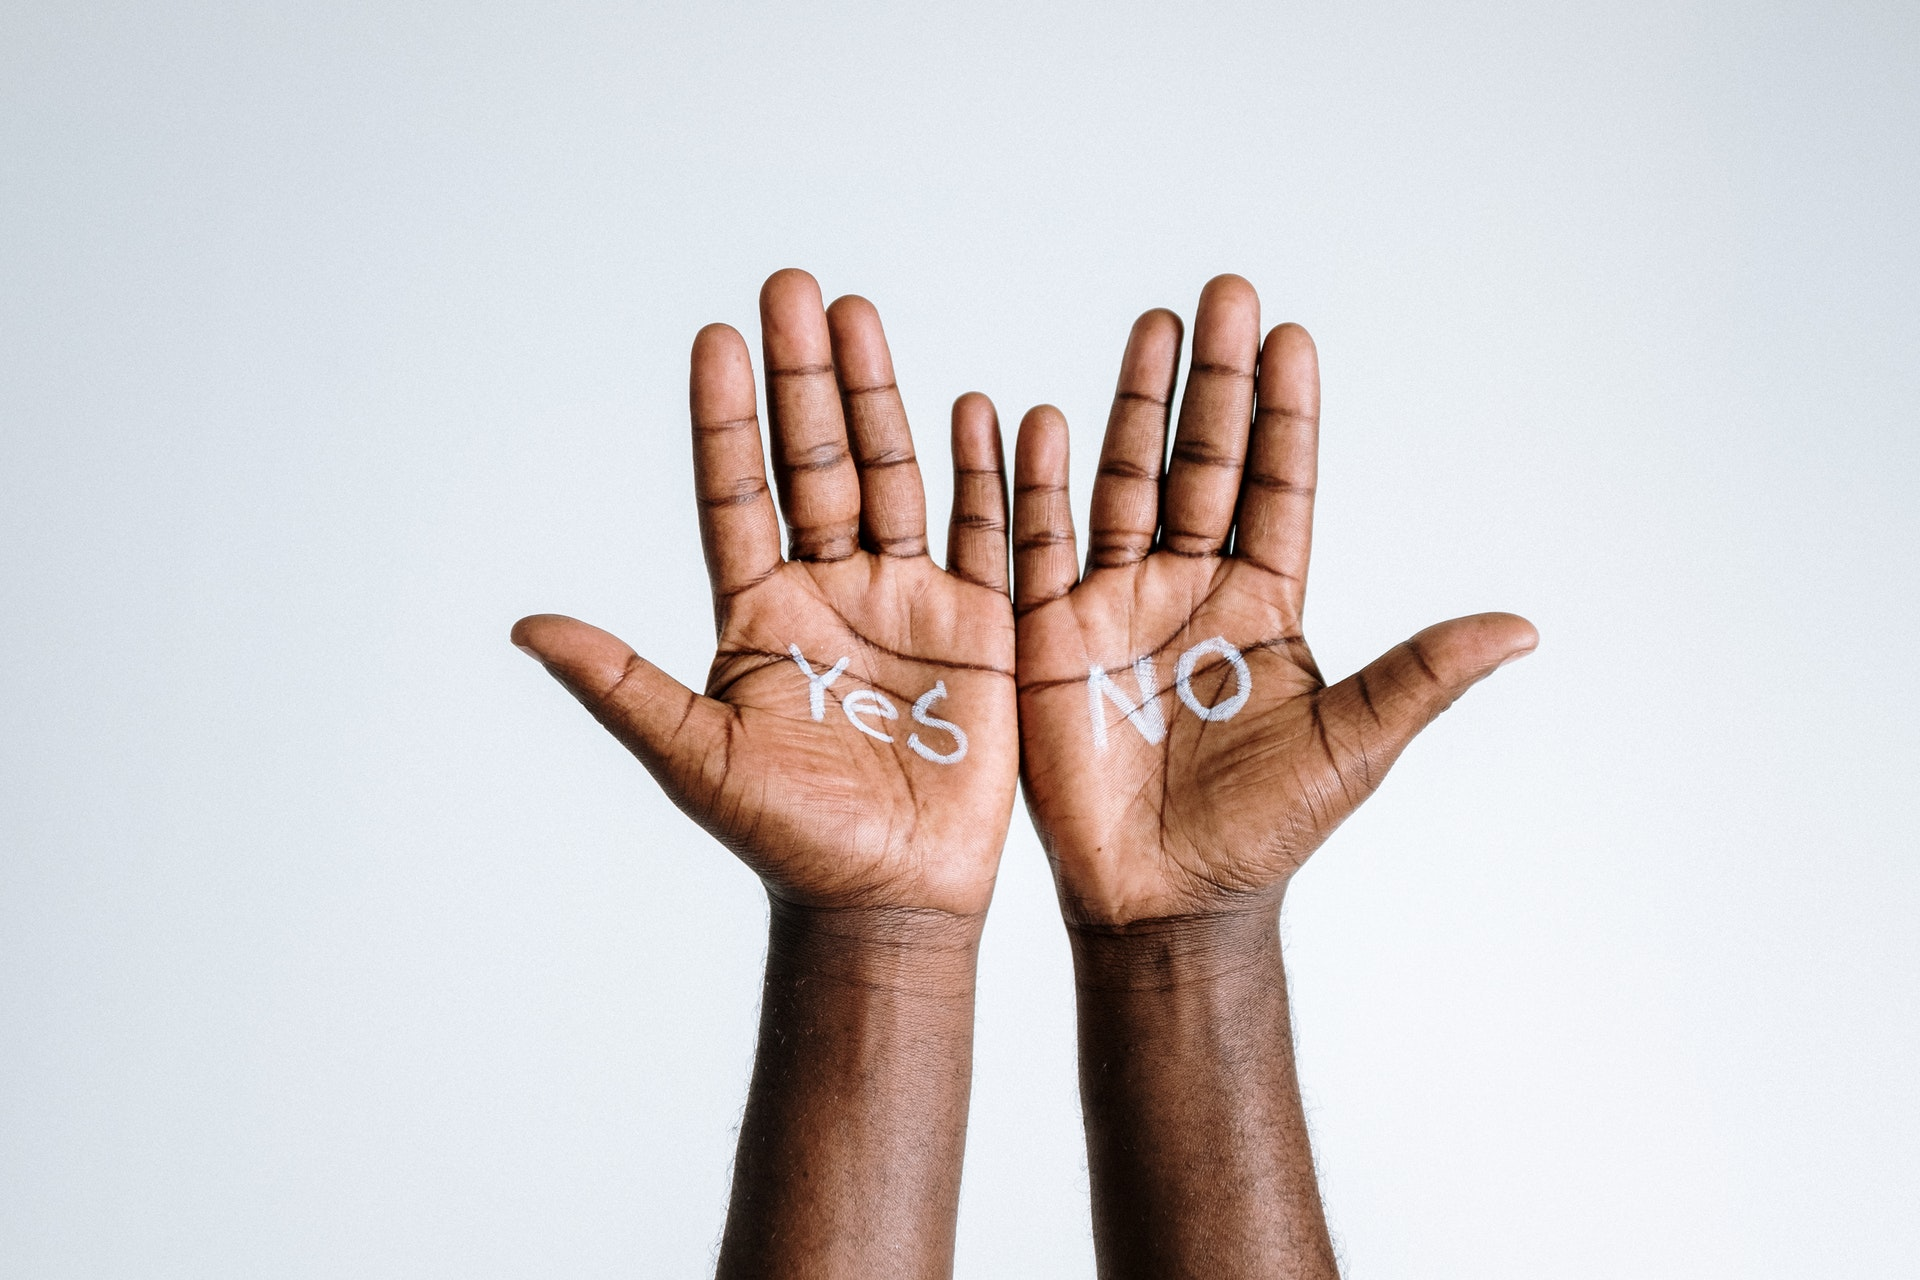 Hands saying yes and no about mental capacity